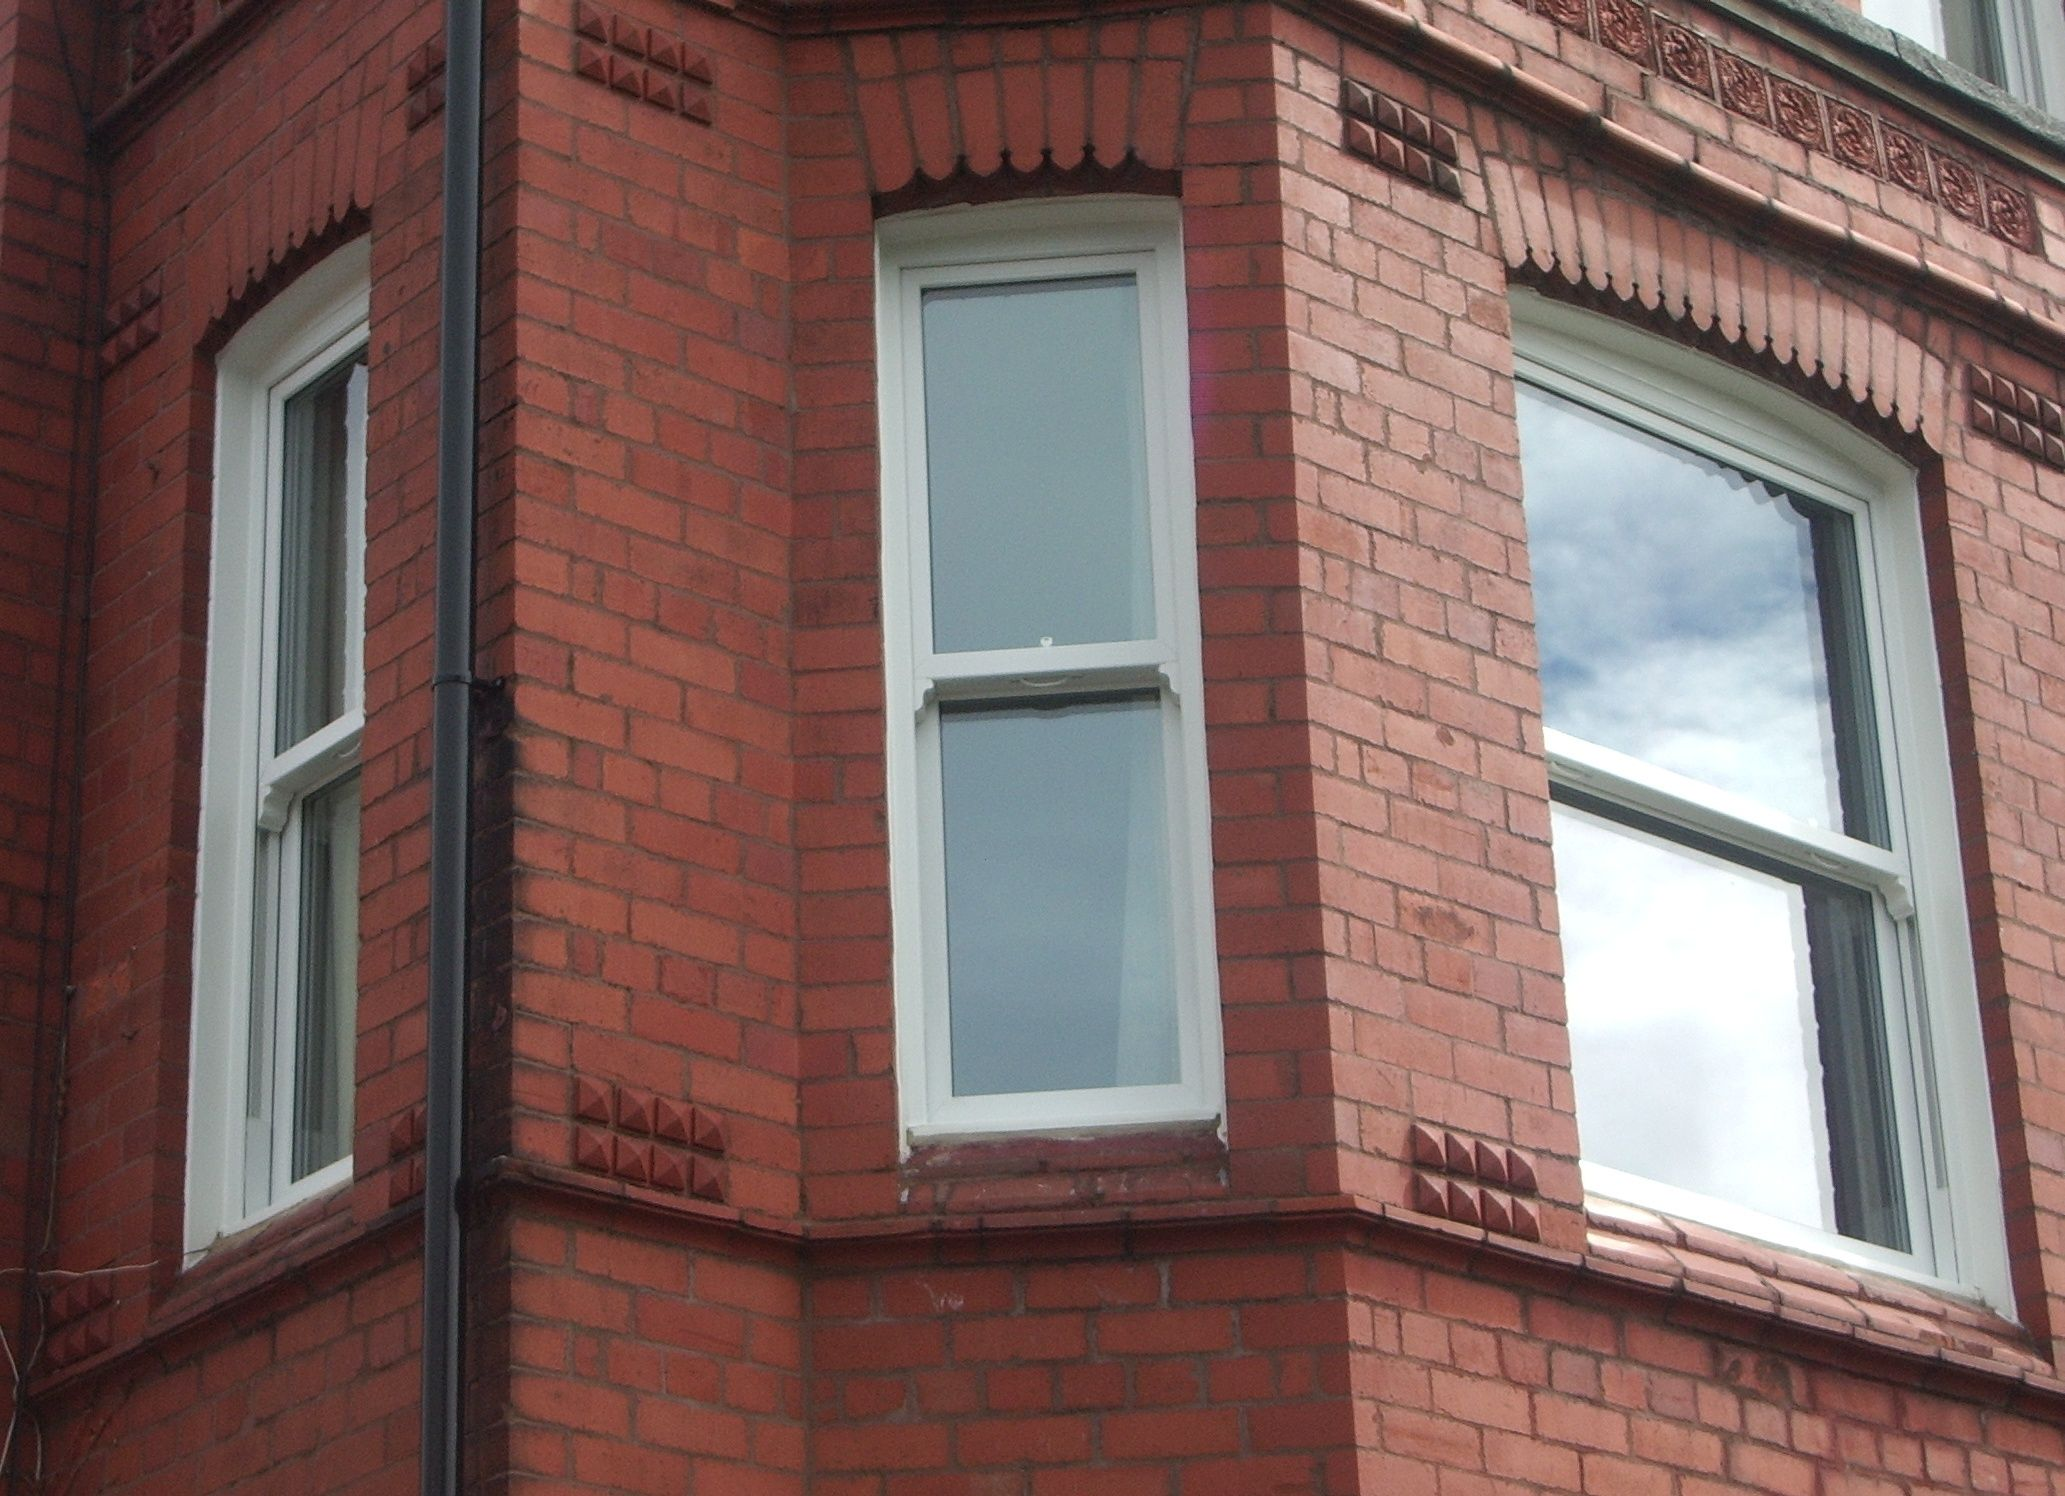 Double glazed sliding sash window manufactured and fitted by Everite Windows http://www.everitewindows.com/Sash-Windows